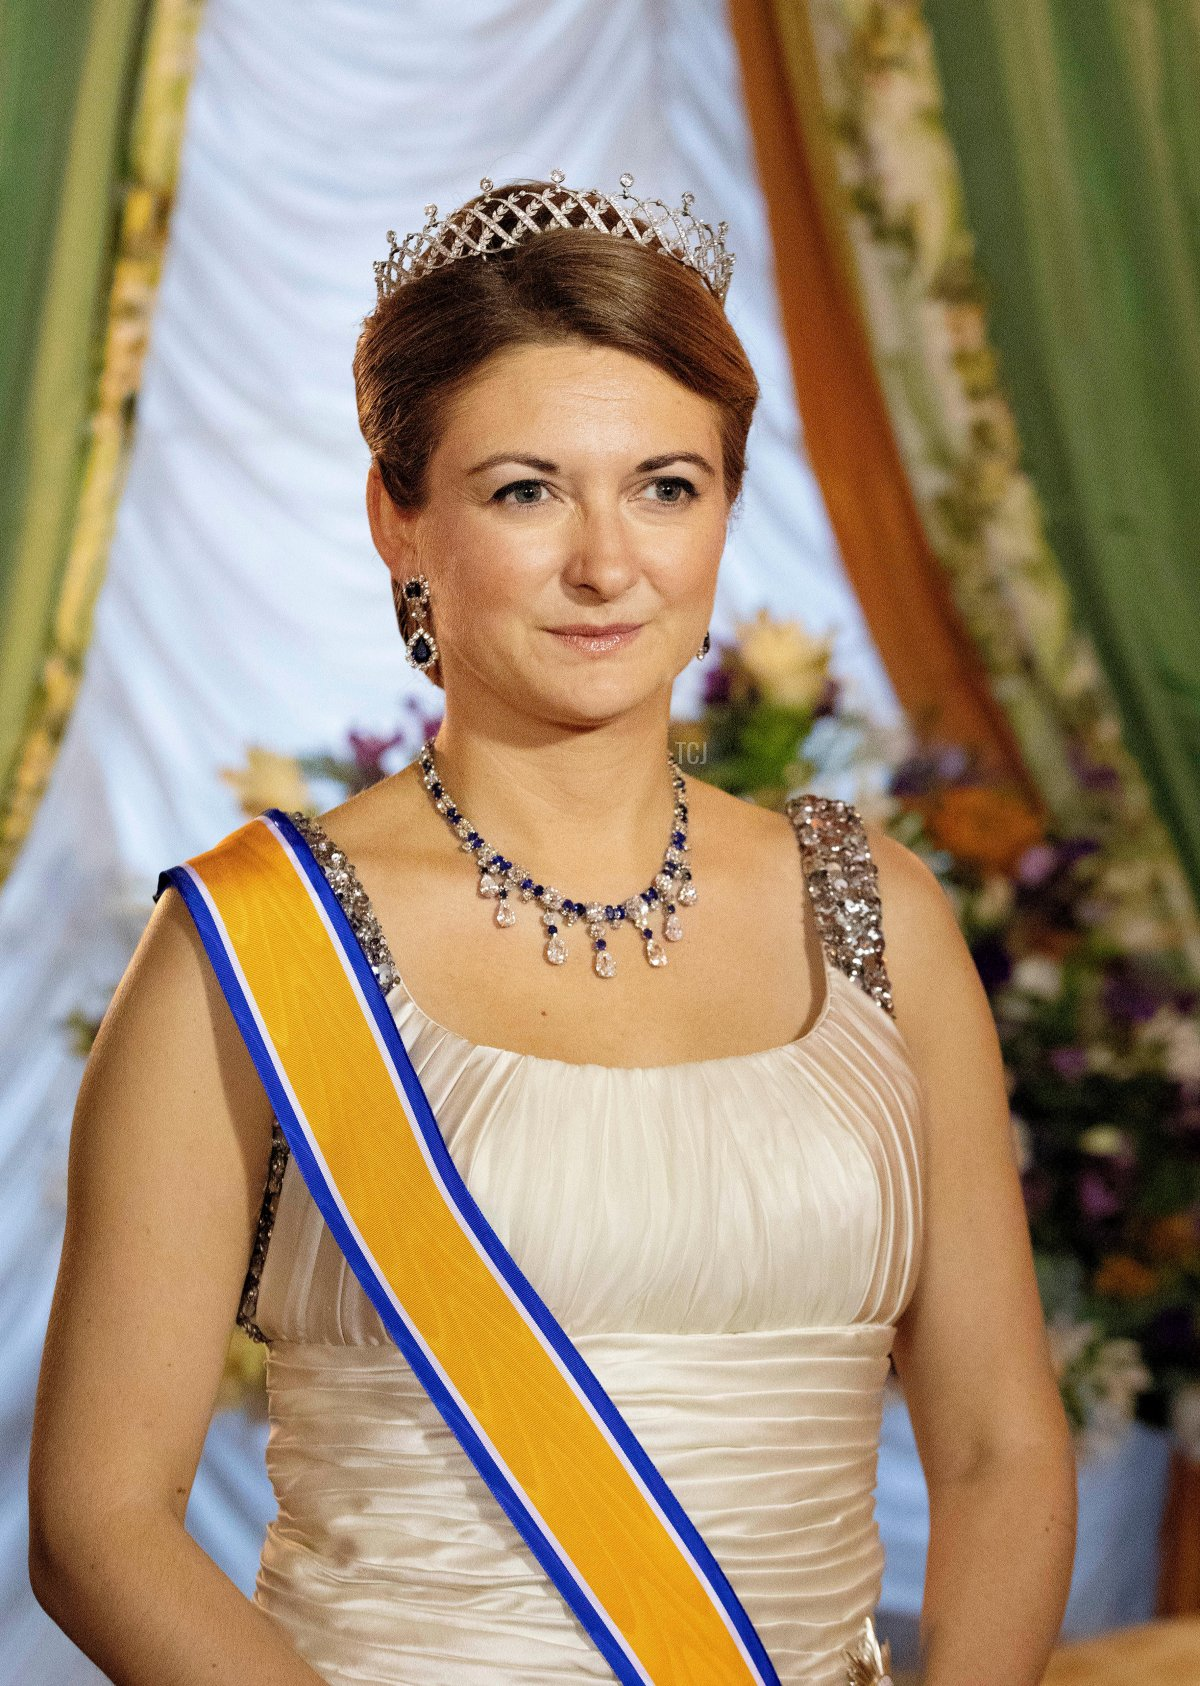 Hereditary Grand Duchess Stephanie of Luxembourg at the Palais Grand-Ducal in Luxembourg, on May 23, 2018, official photo moment before the State Banquet on the 1st day of the State visit